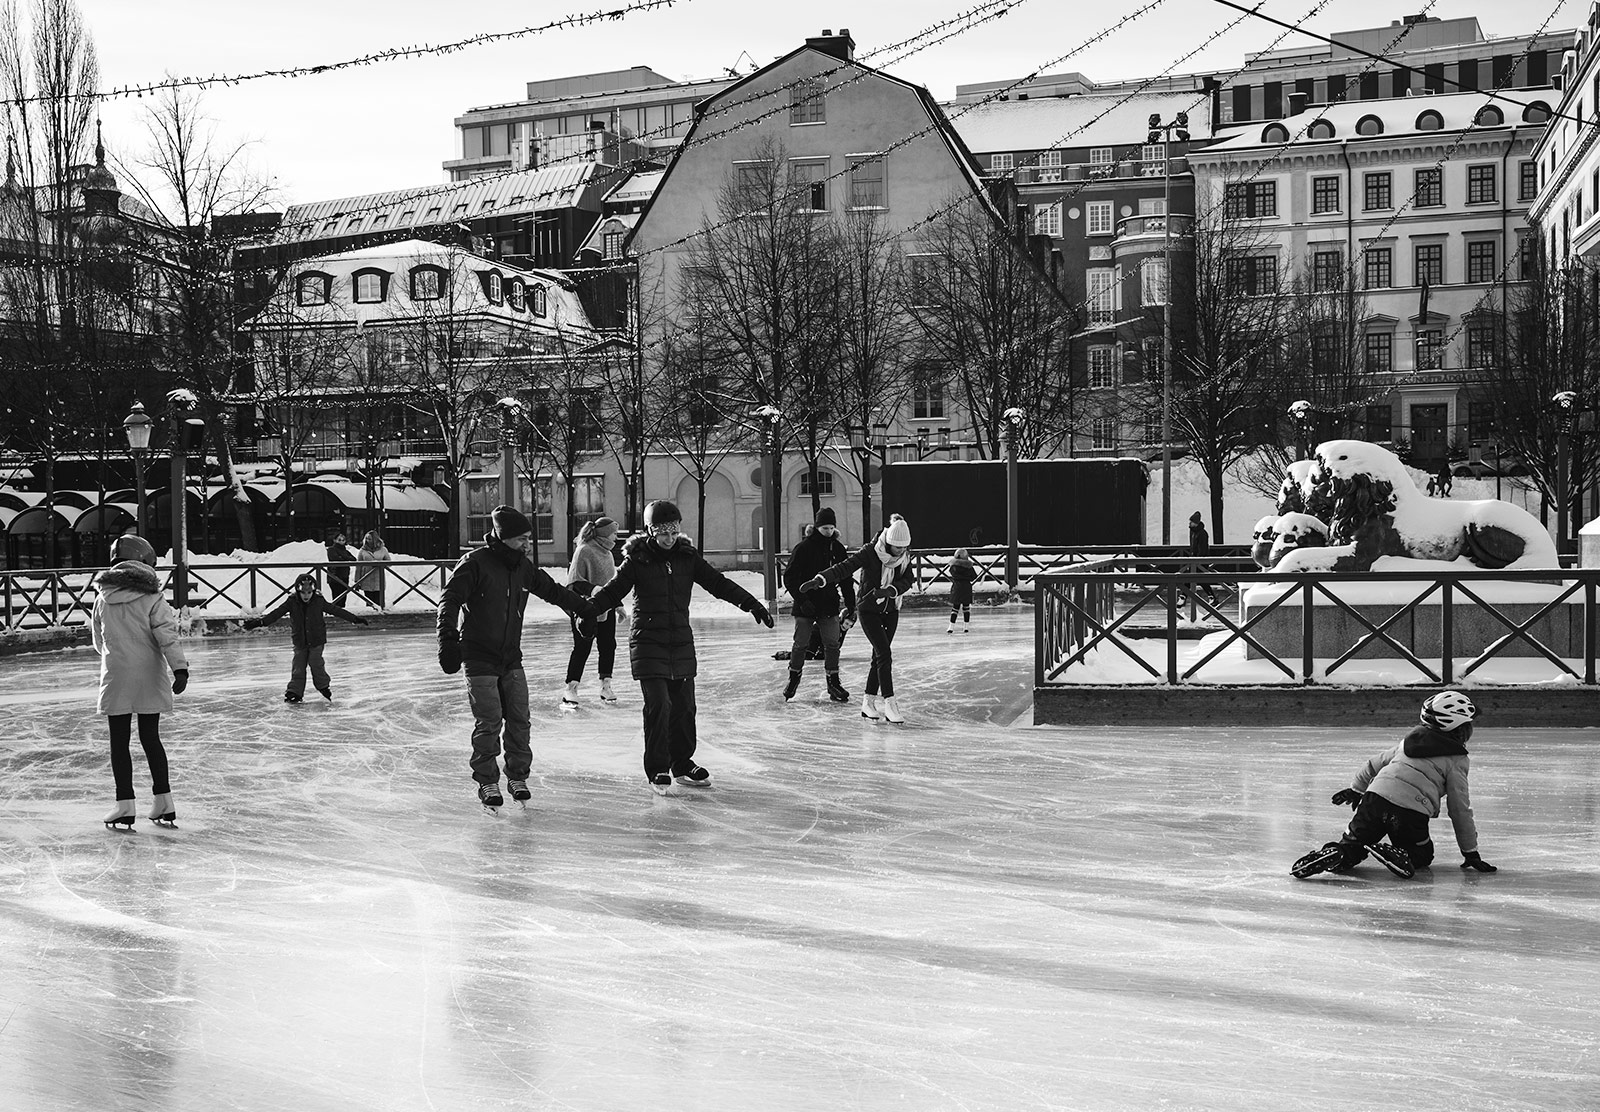 People skating on ice rink